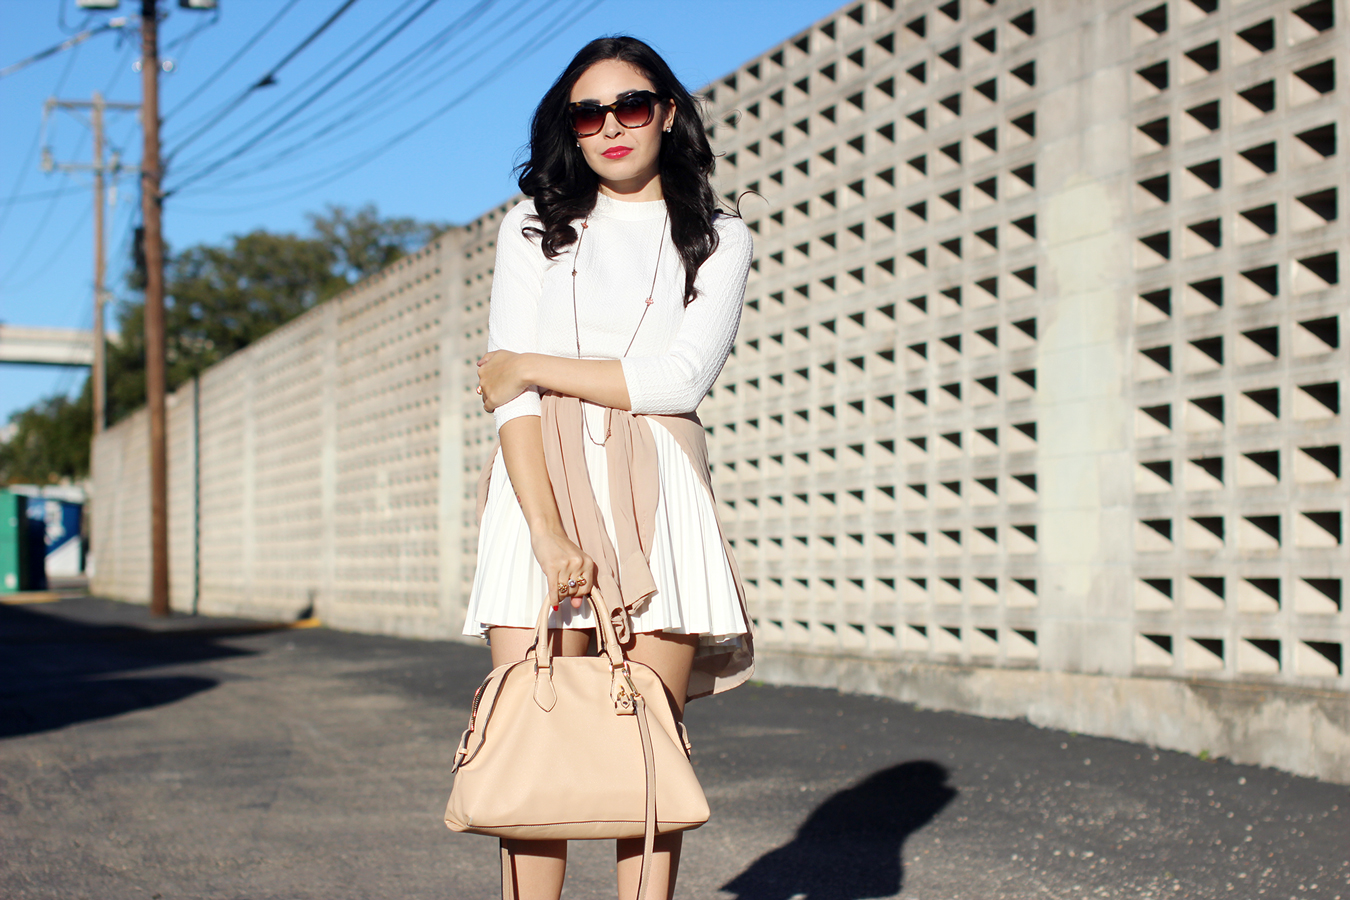 FTT-WHITE-TENNIS-PLEATED-SKIRT-CROP-KNIT-RED-LIPS-NUDE-ALDO-PUMPS-6